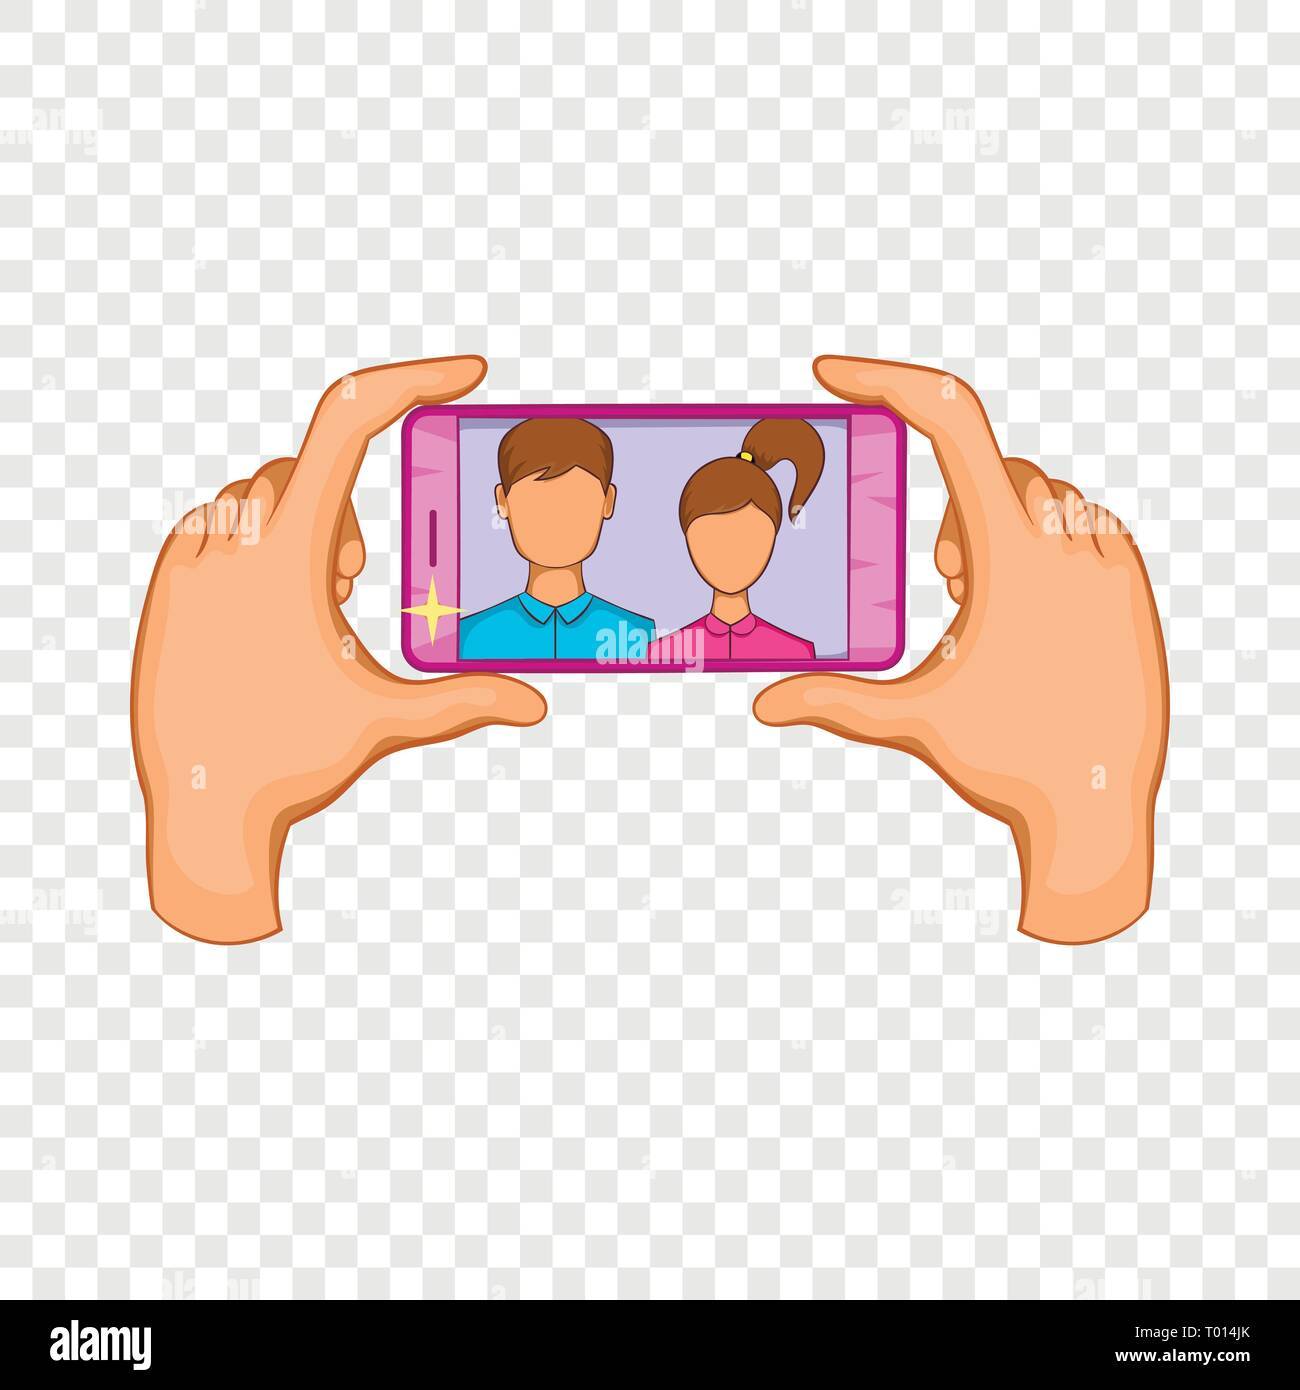 Hands photographed on a cell phone icon - Stock Vector